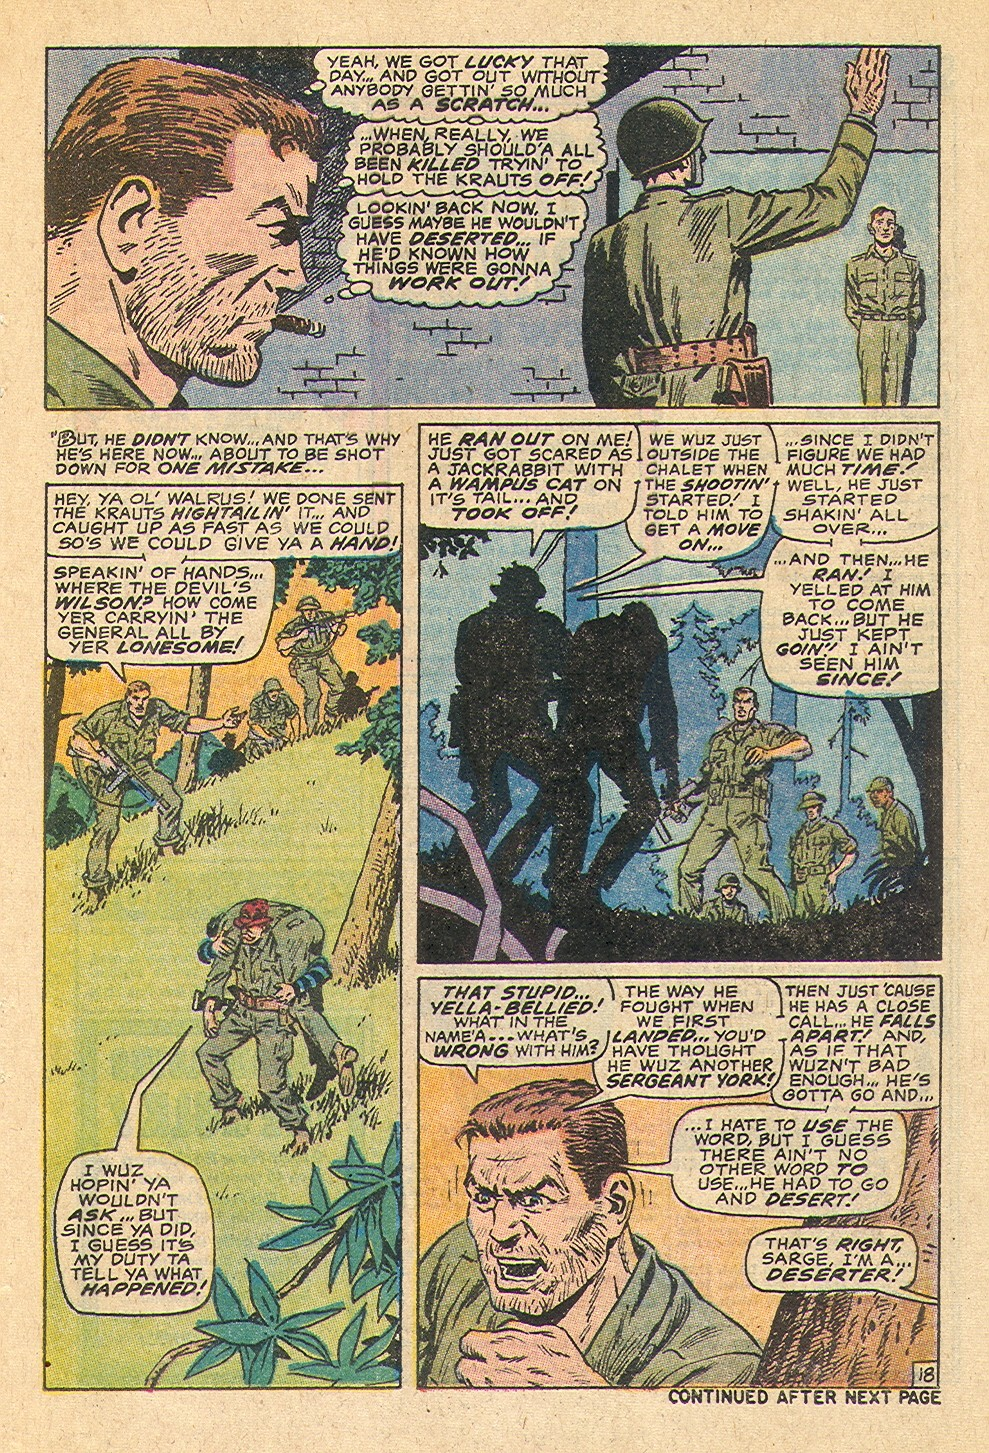 Read online Sgt. Fury comic -  Issue #75 - 25